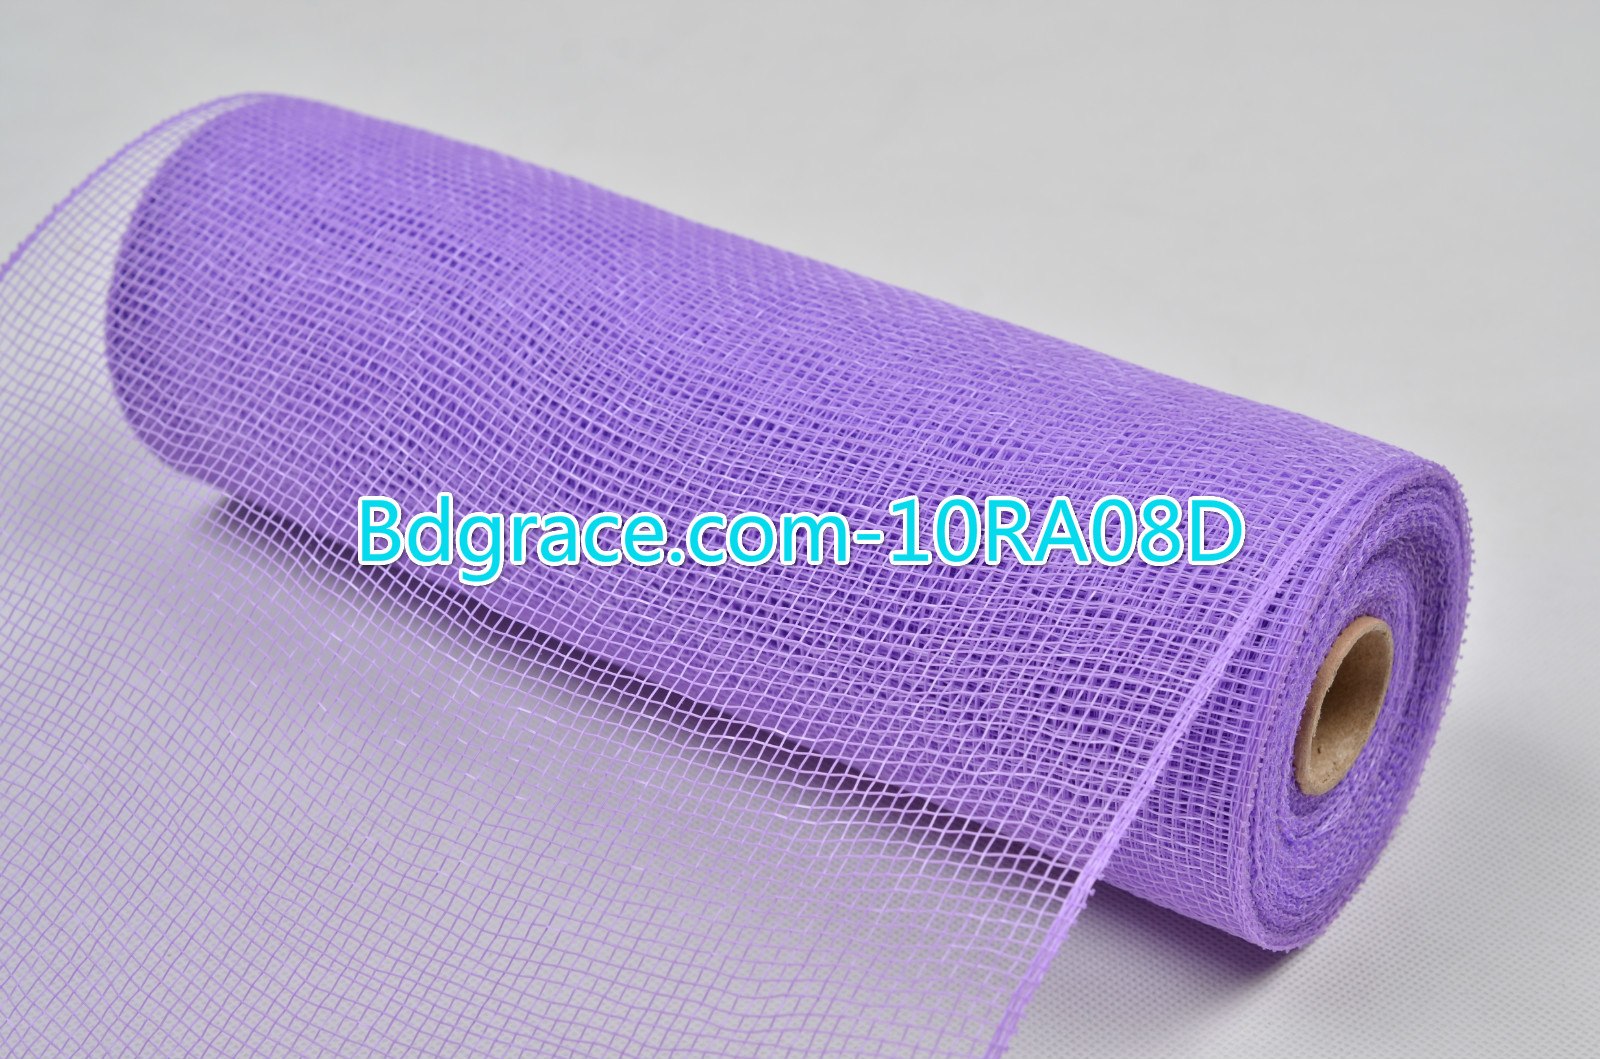 10inch Plain Solid Mesh 10RA08D Mid Purple